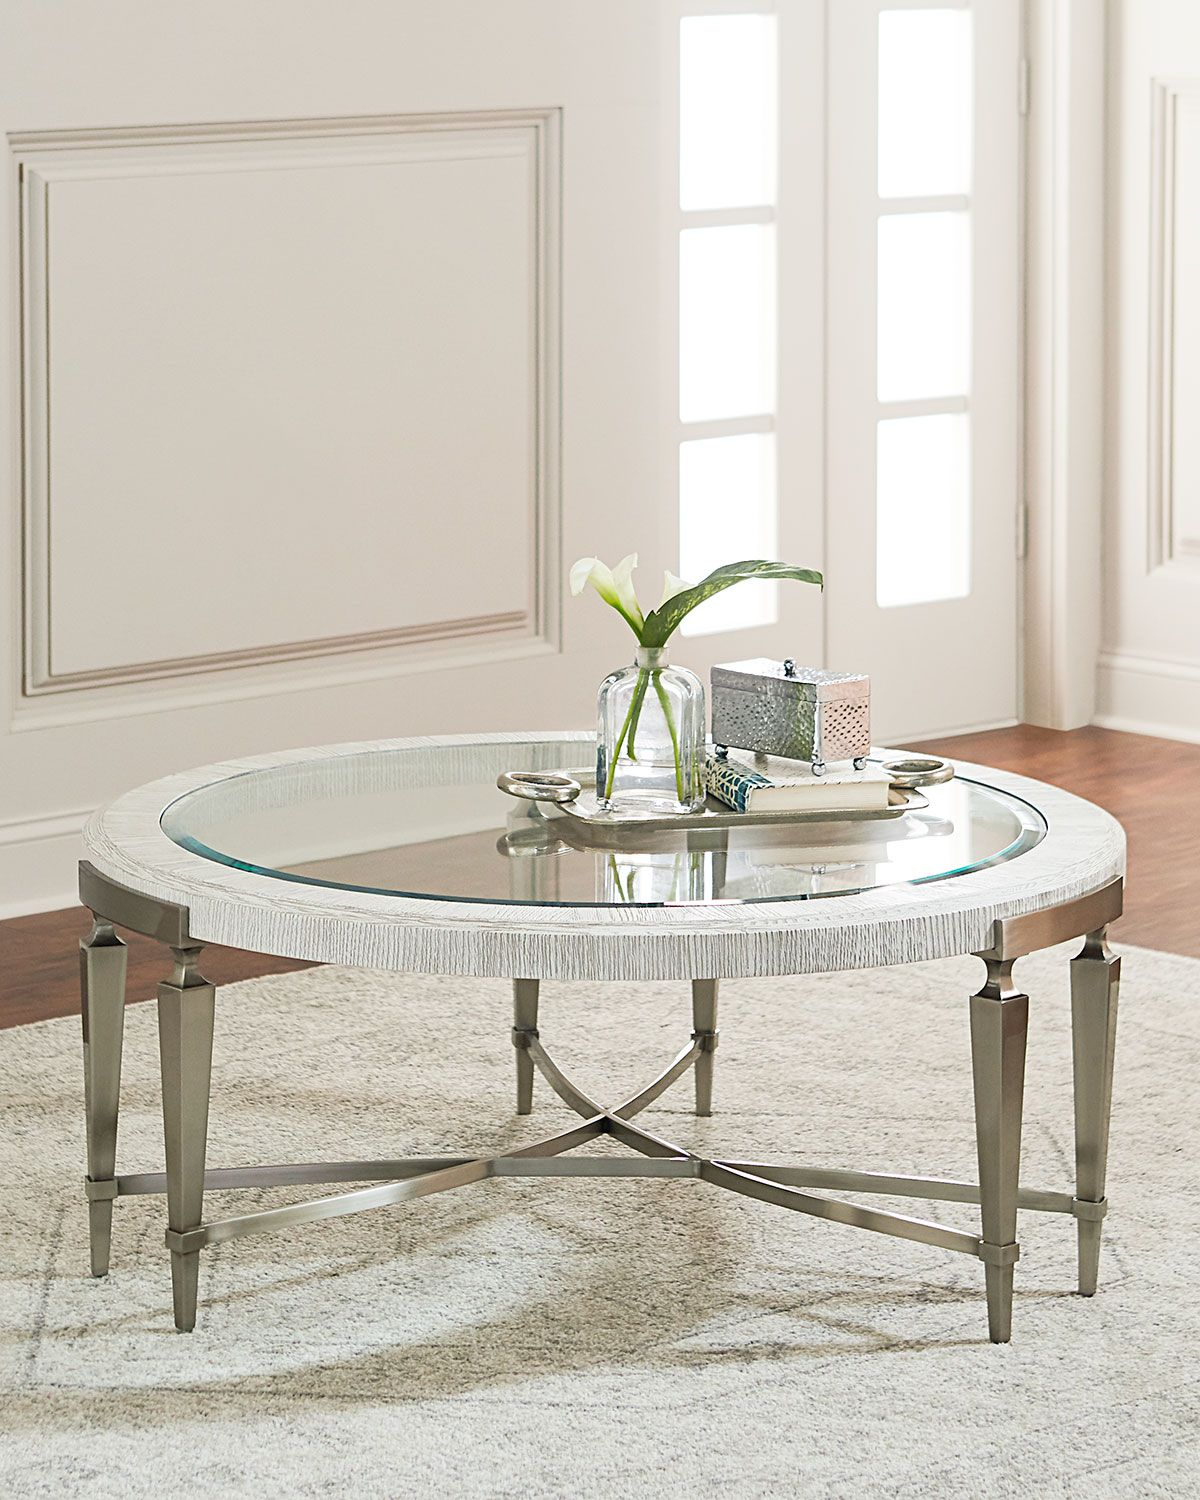 Bernhardt Damonica White Oak Round Coffee Table Round Coffee